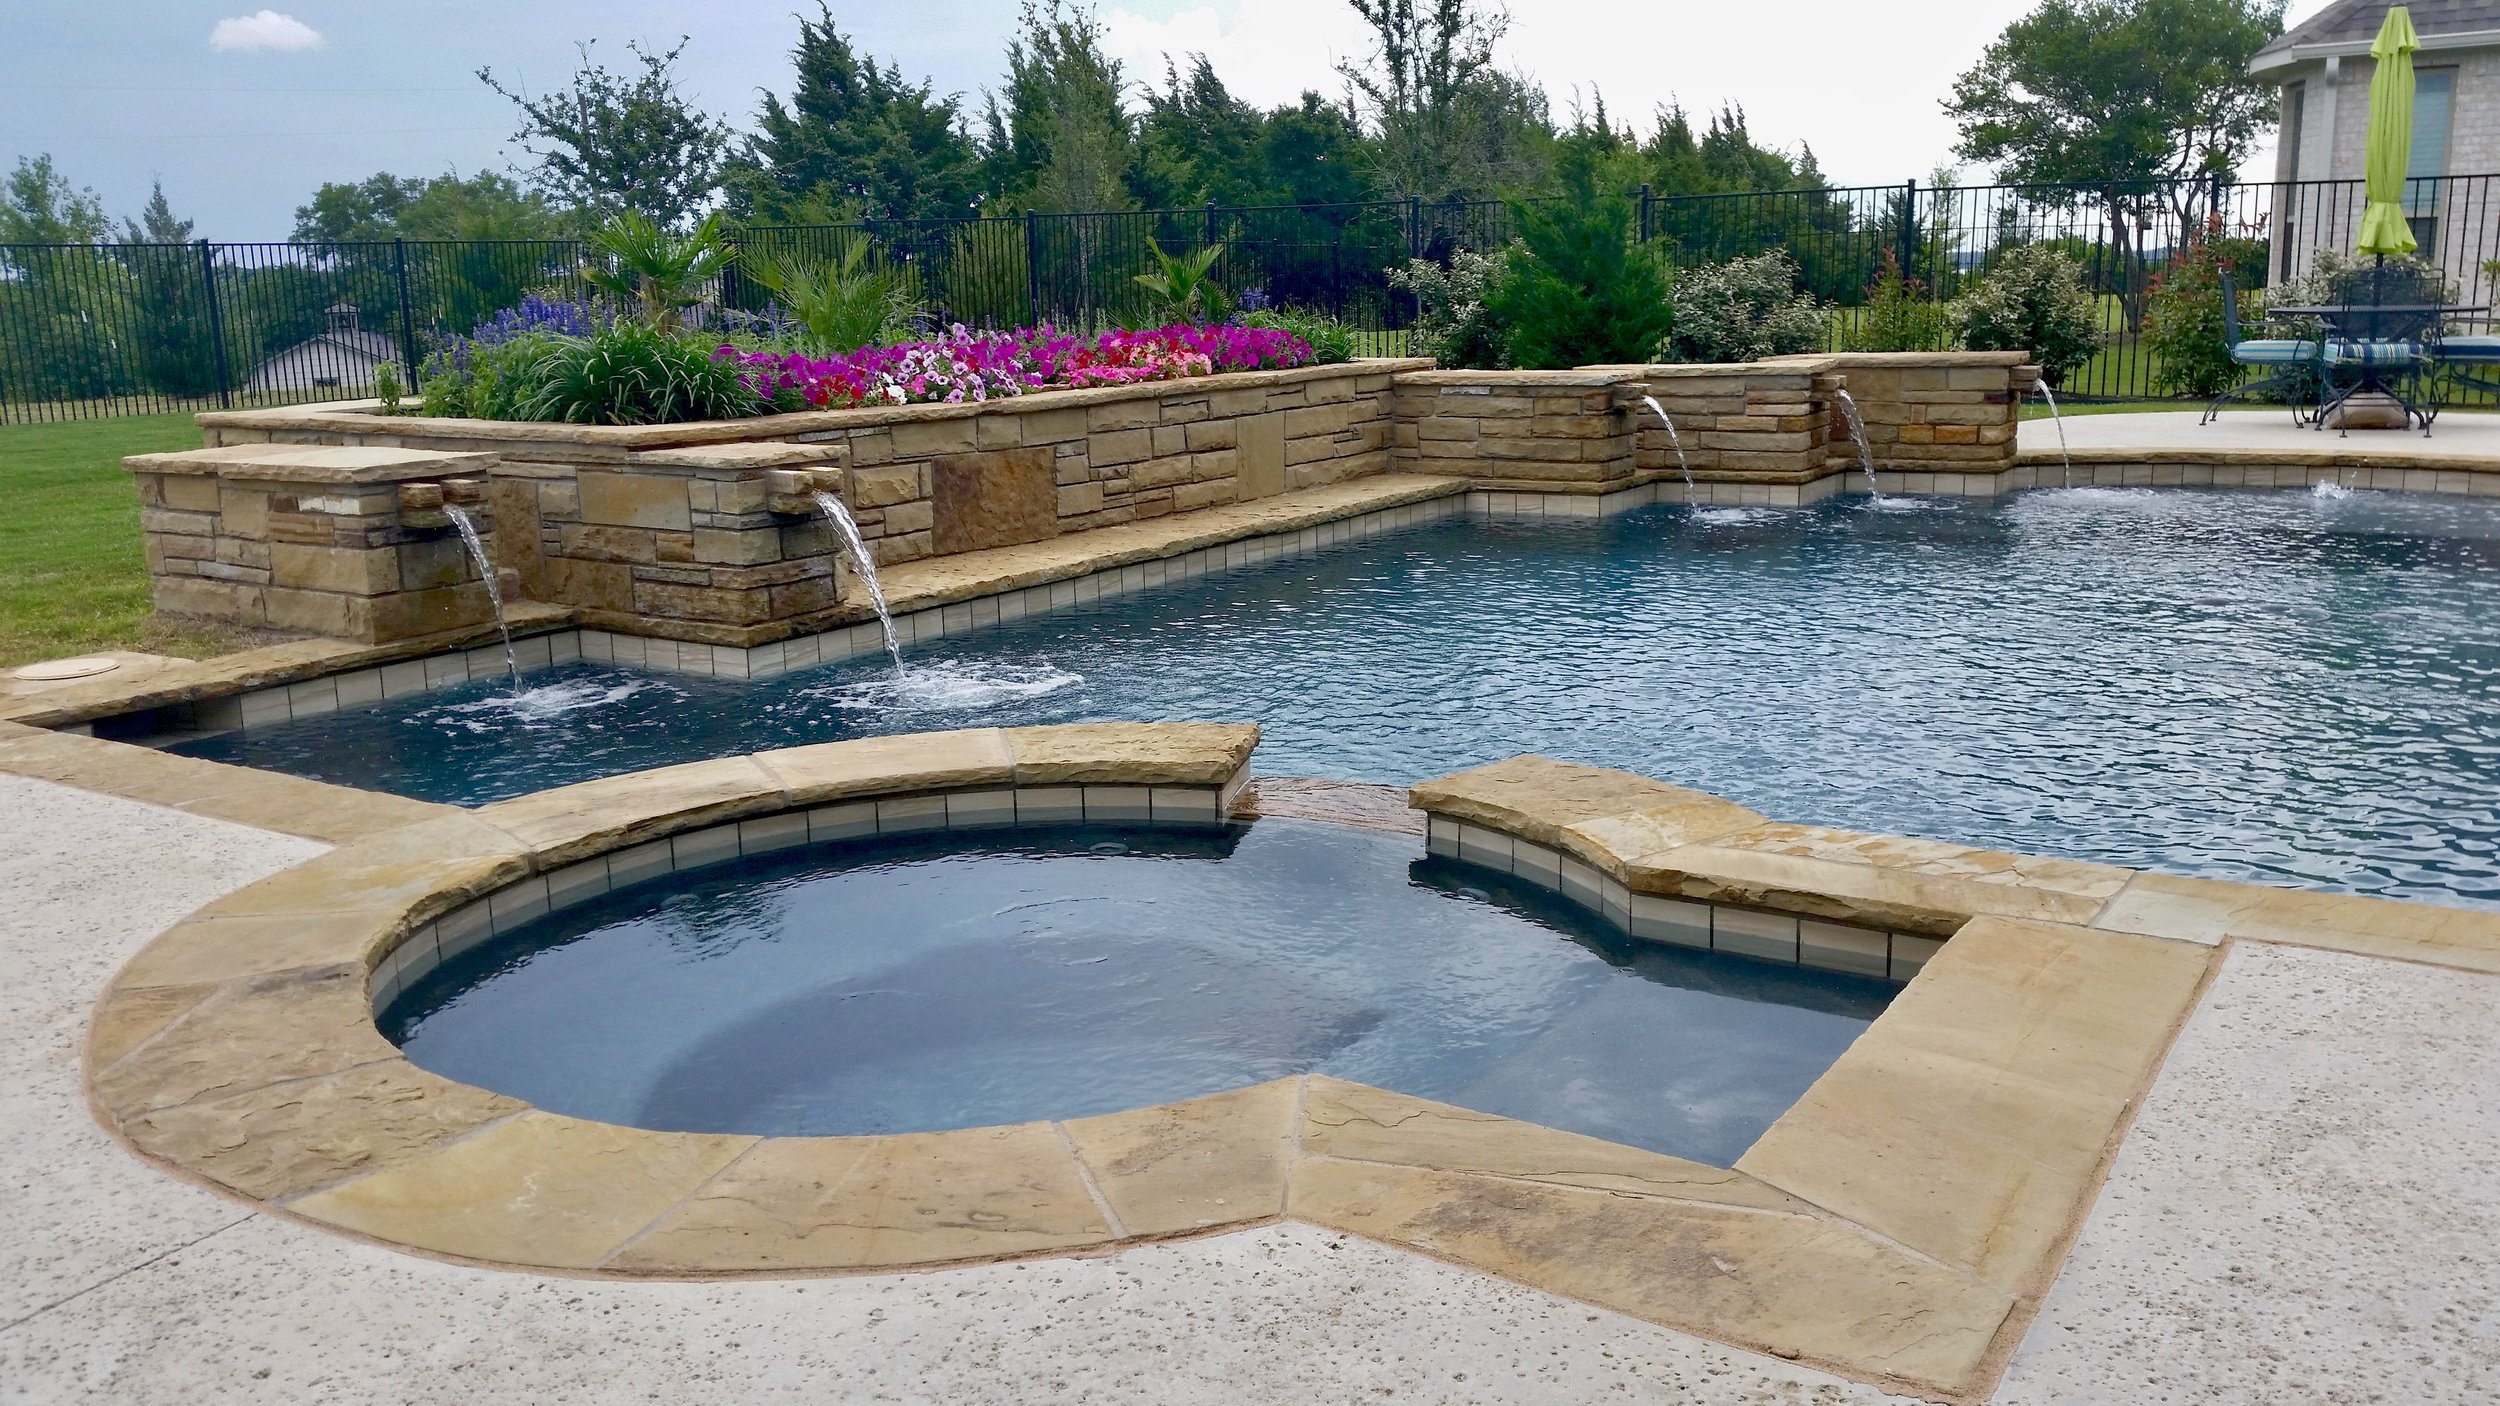 Lucas+Pool+Adjusted